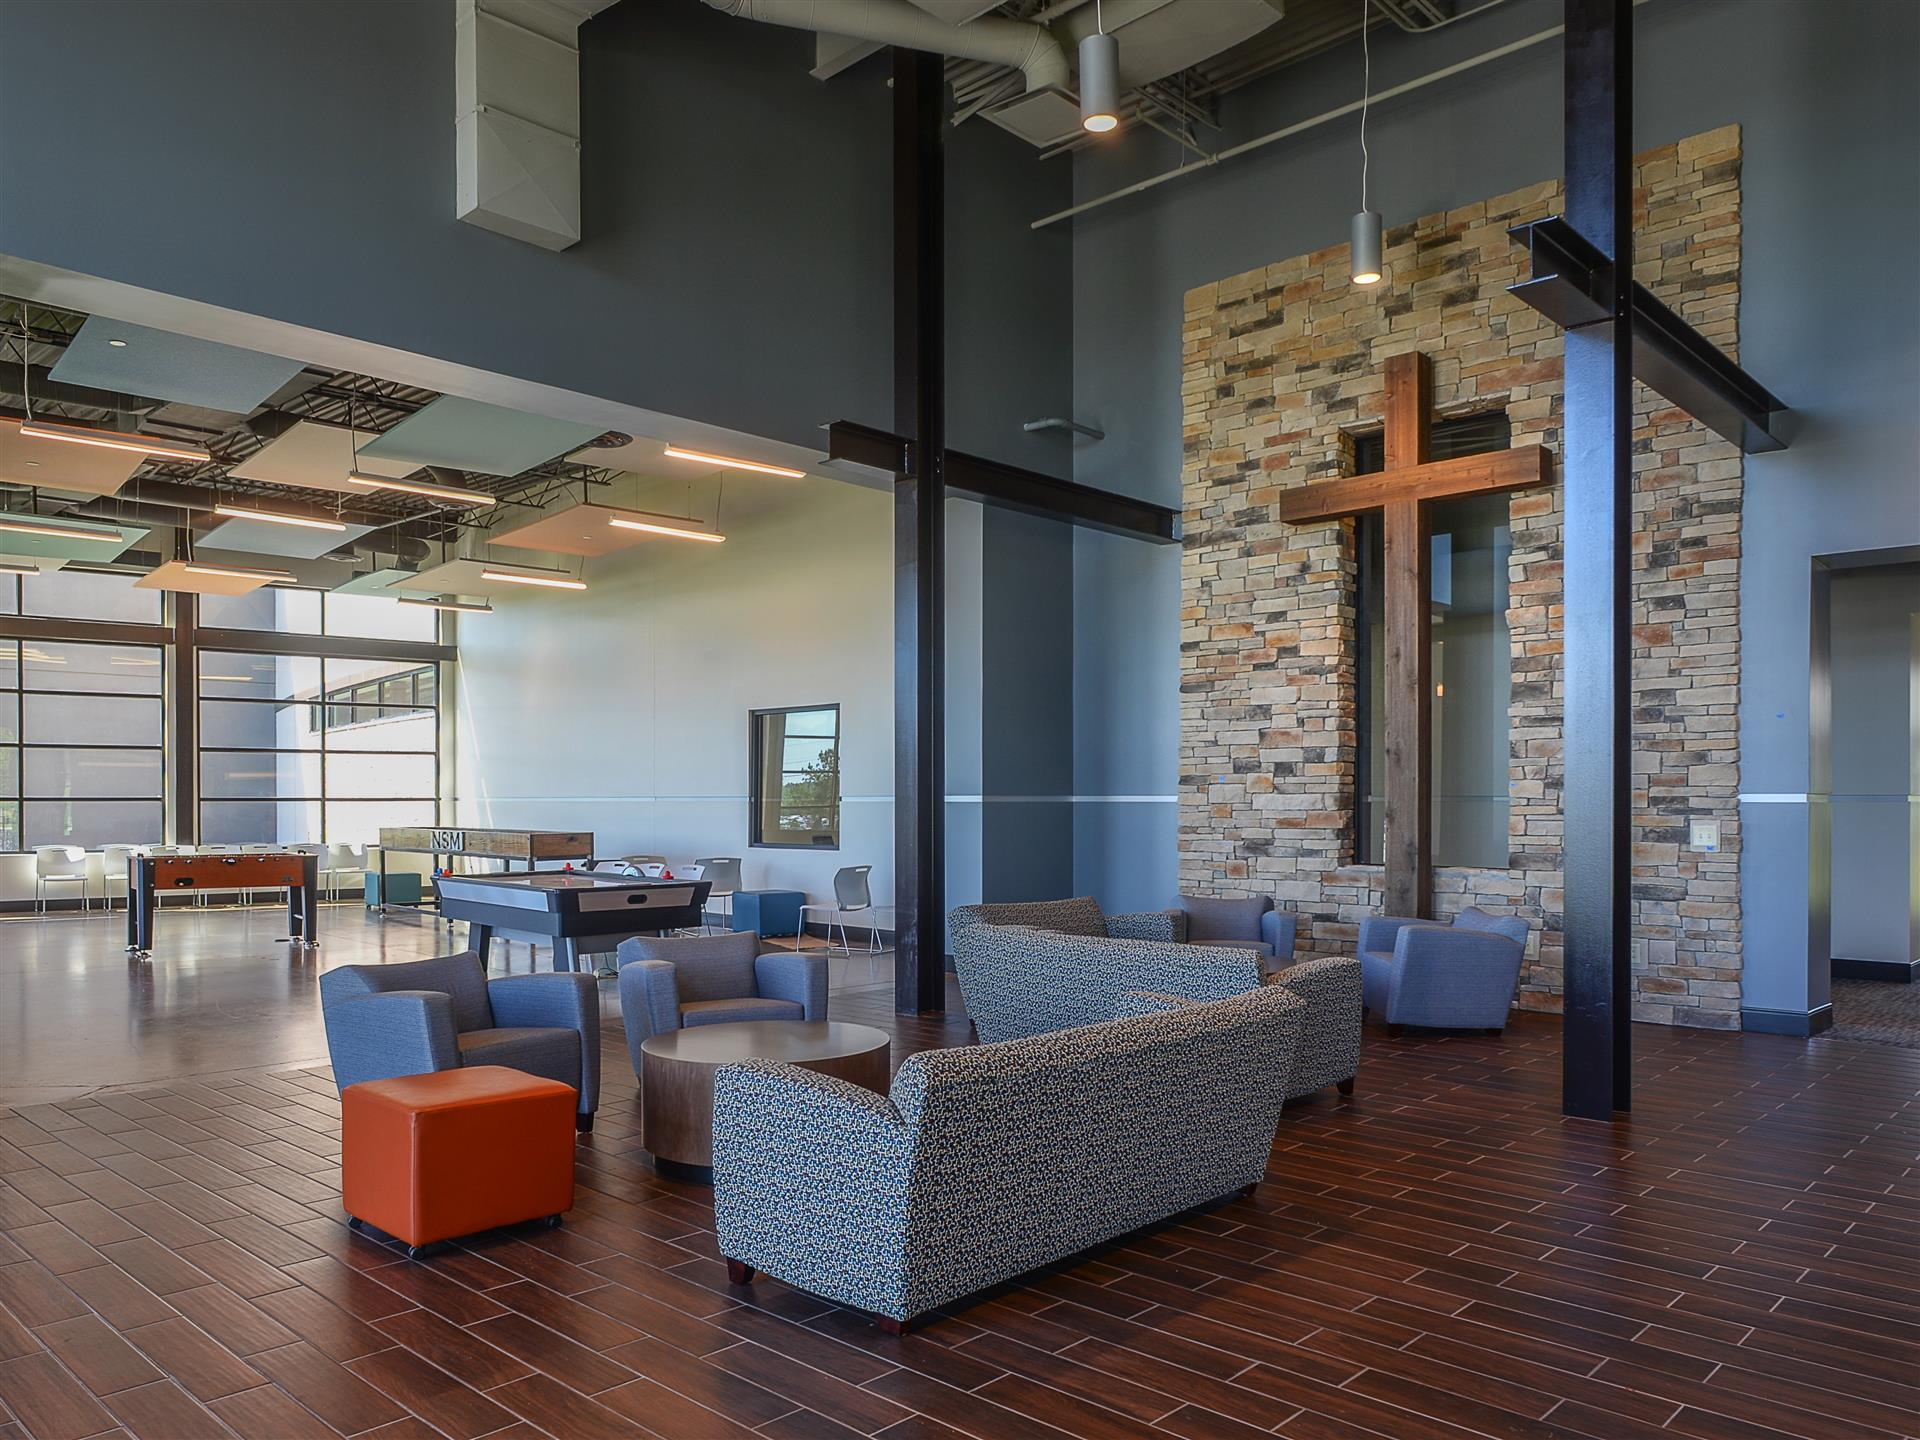 student gathering center with couches and cross on the wall